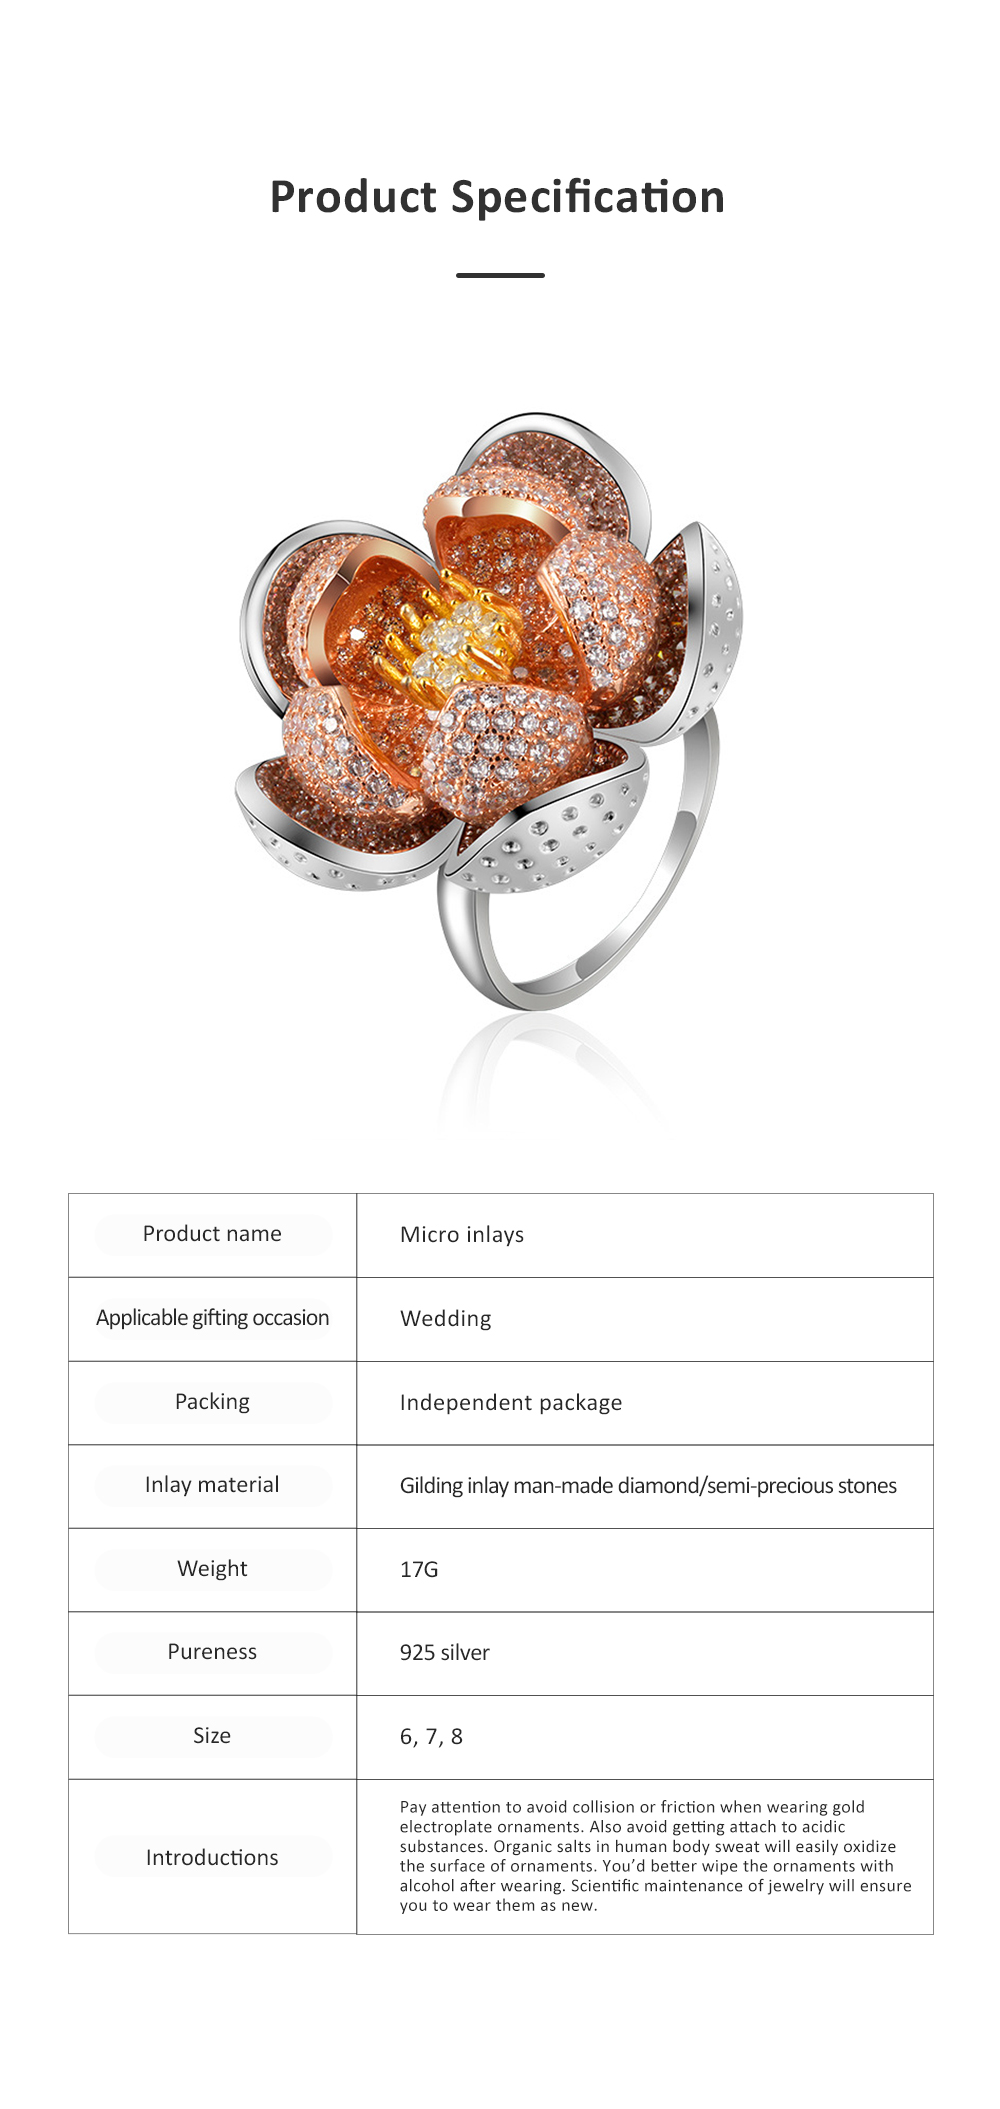 2020 Latest European Style S925 Silver Lotus Flower Ring in Vogue, Easy Matching Glittering Zircon Diamond Ring 5